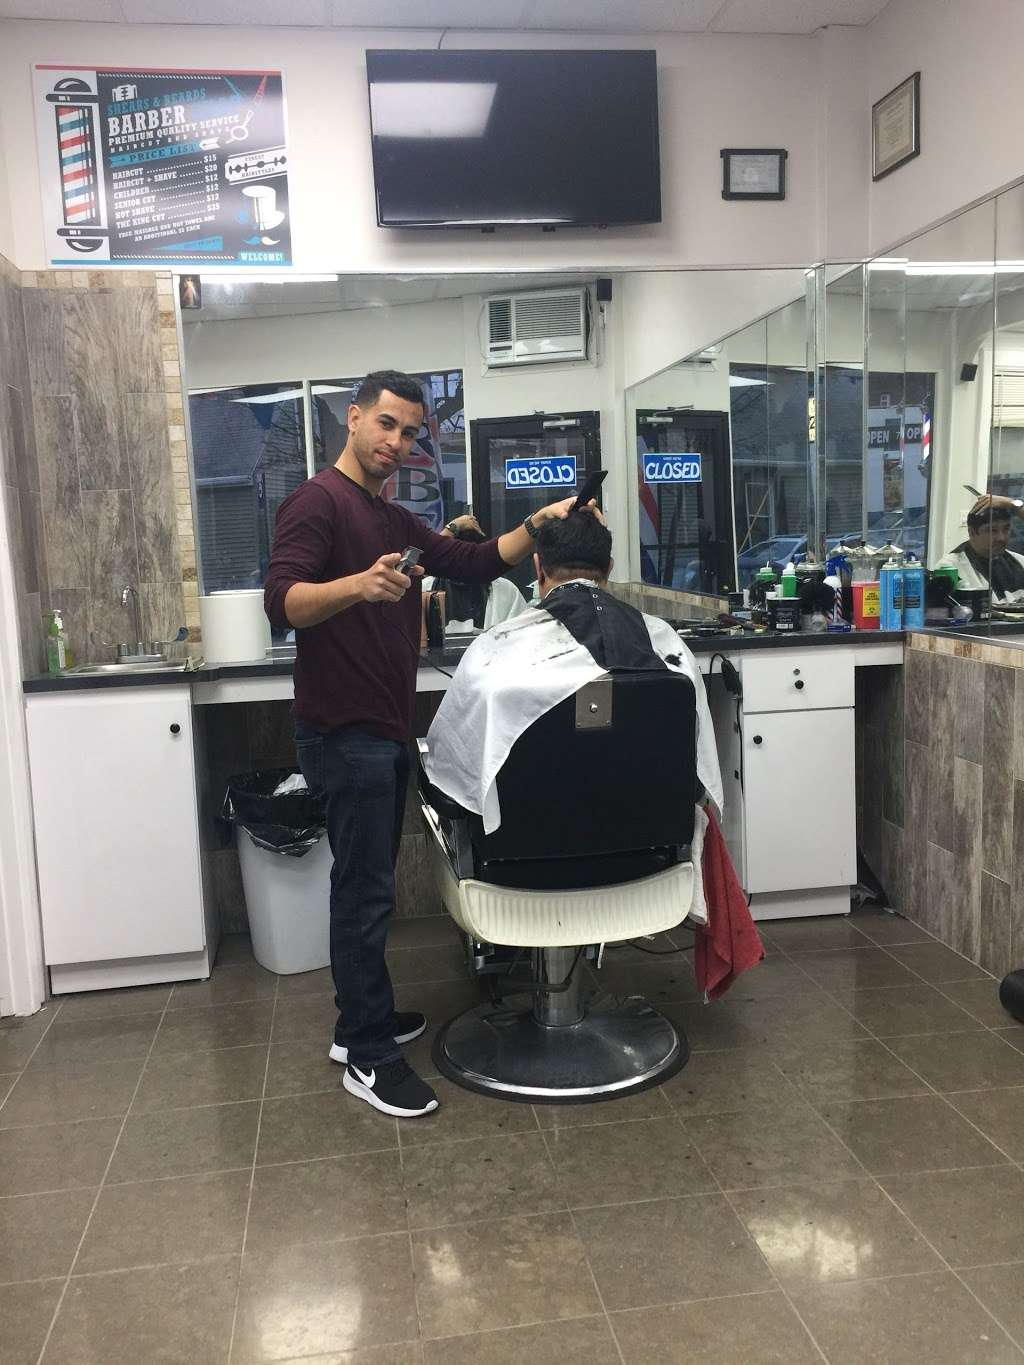 Shears & Beards Barber Shop - hair care    Photo 10 of 10   Address: 126-9 15th Ave, College Point, NY 11356, USA   Phone: (718) 353-3696